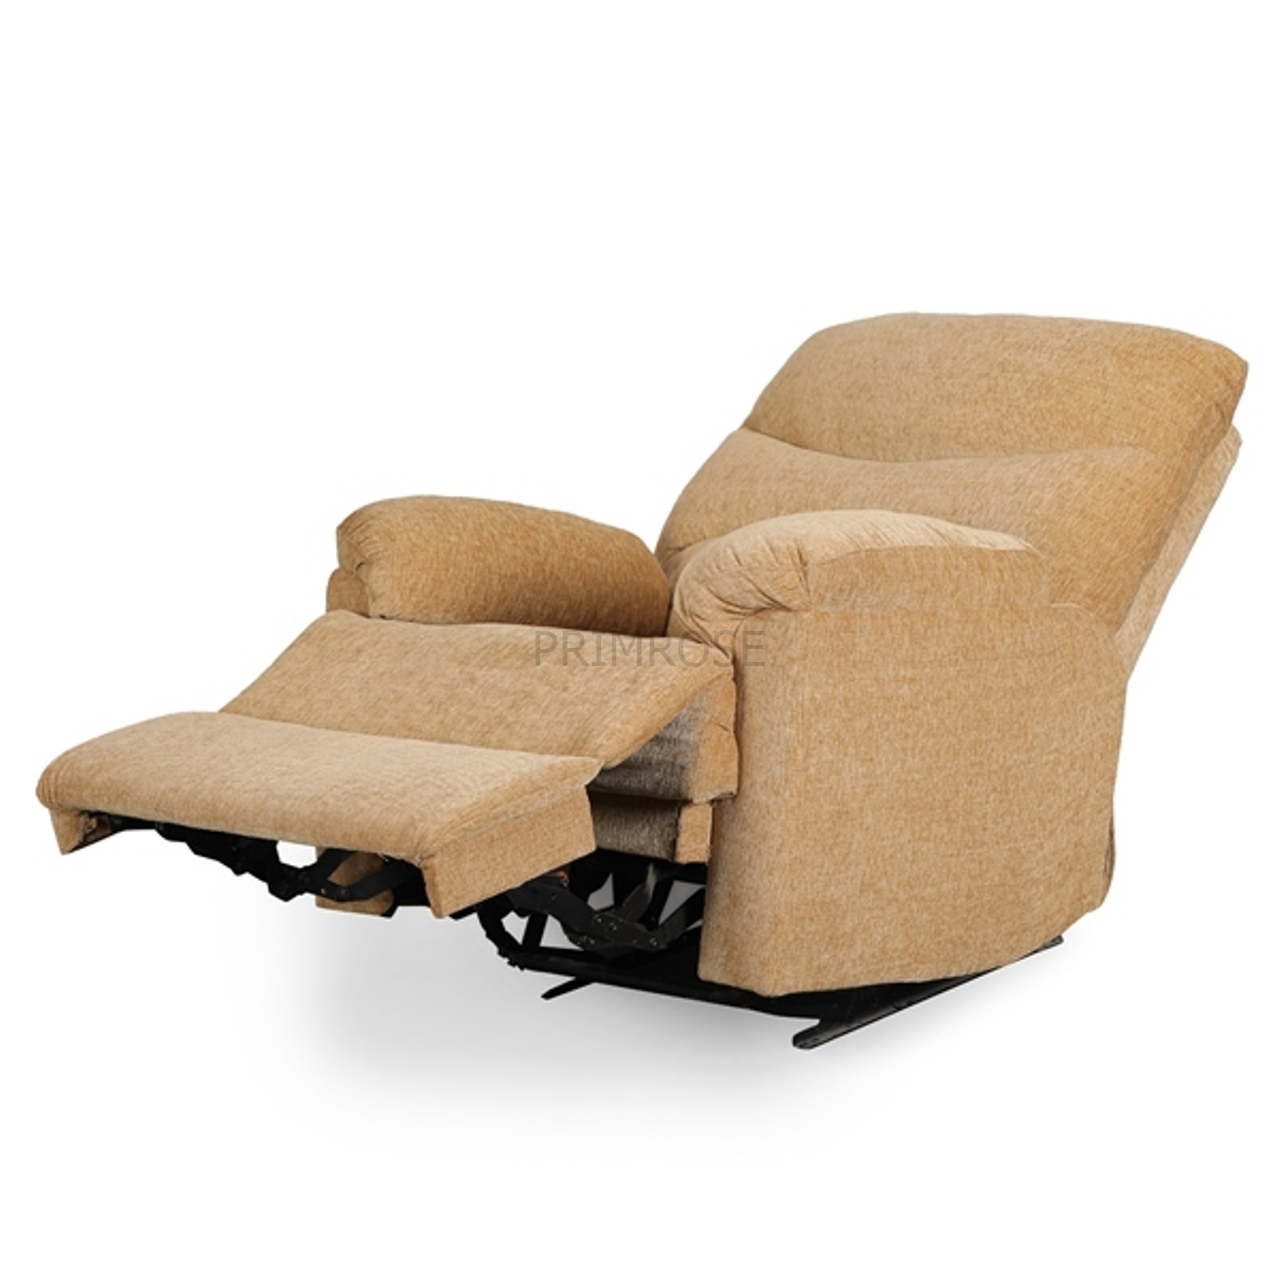 Premium Molphino Manual Recliner     1 Seater Beige